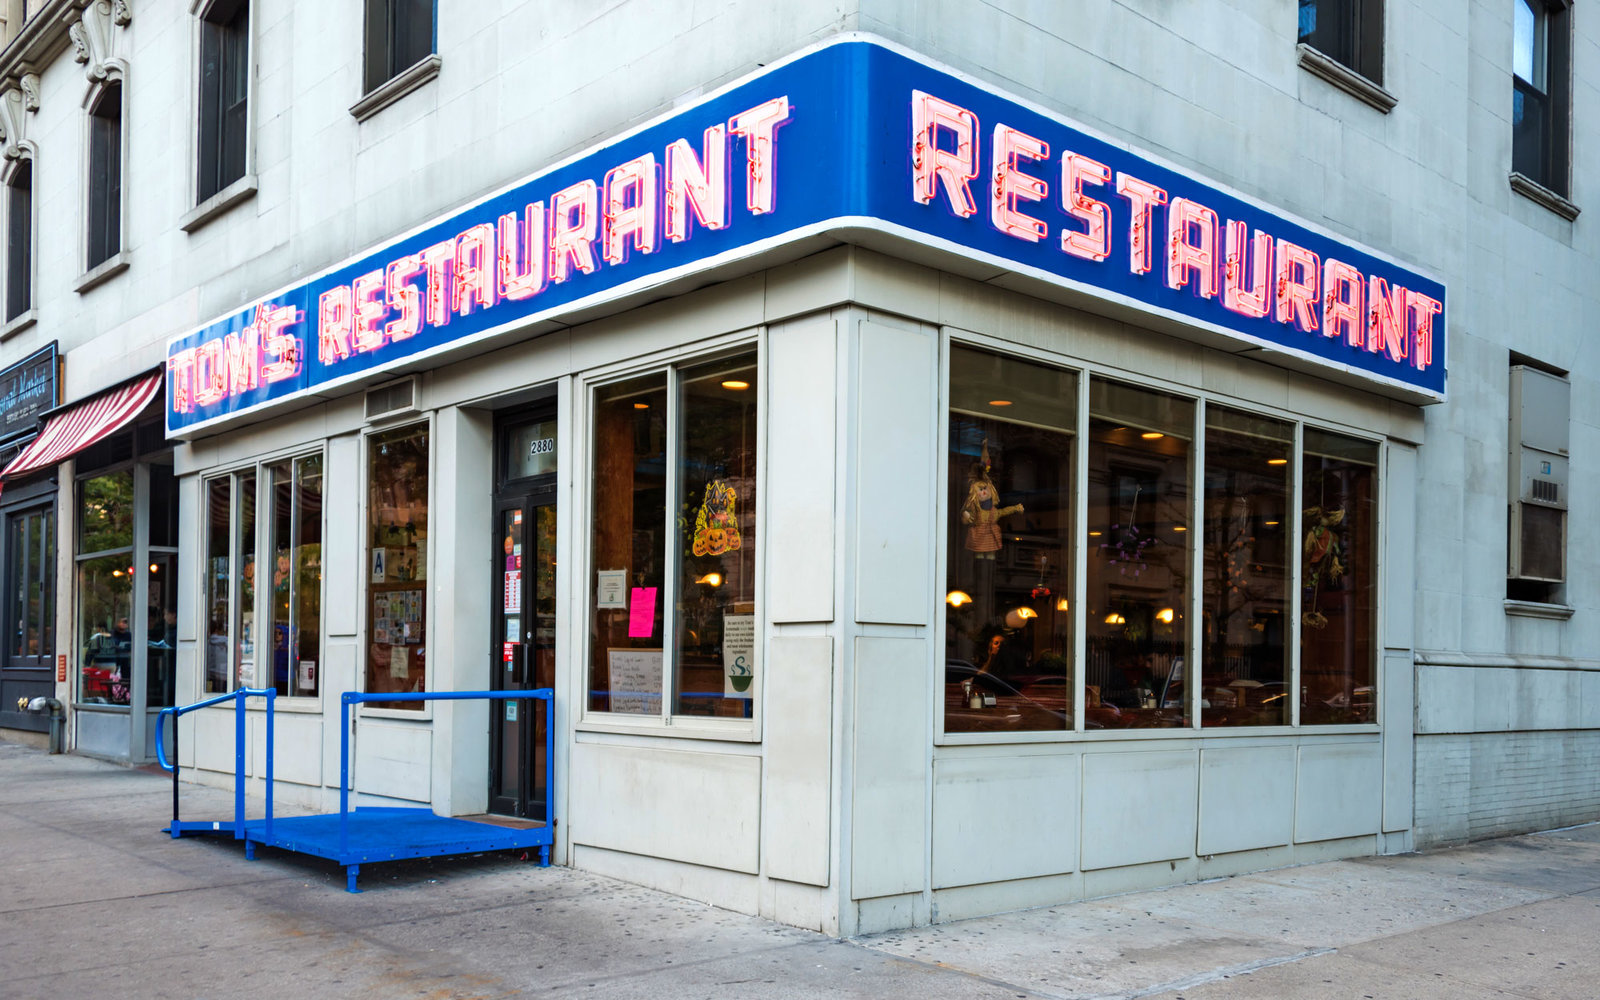 Seinfeld Restaurant New York